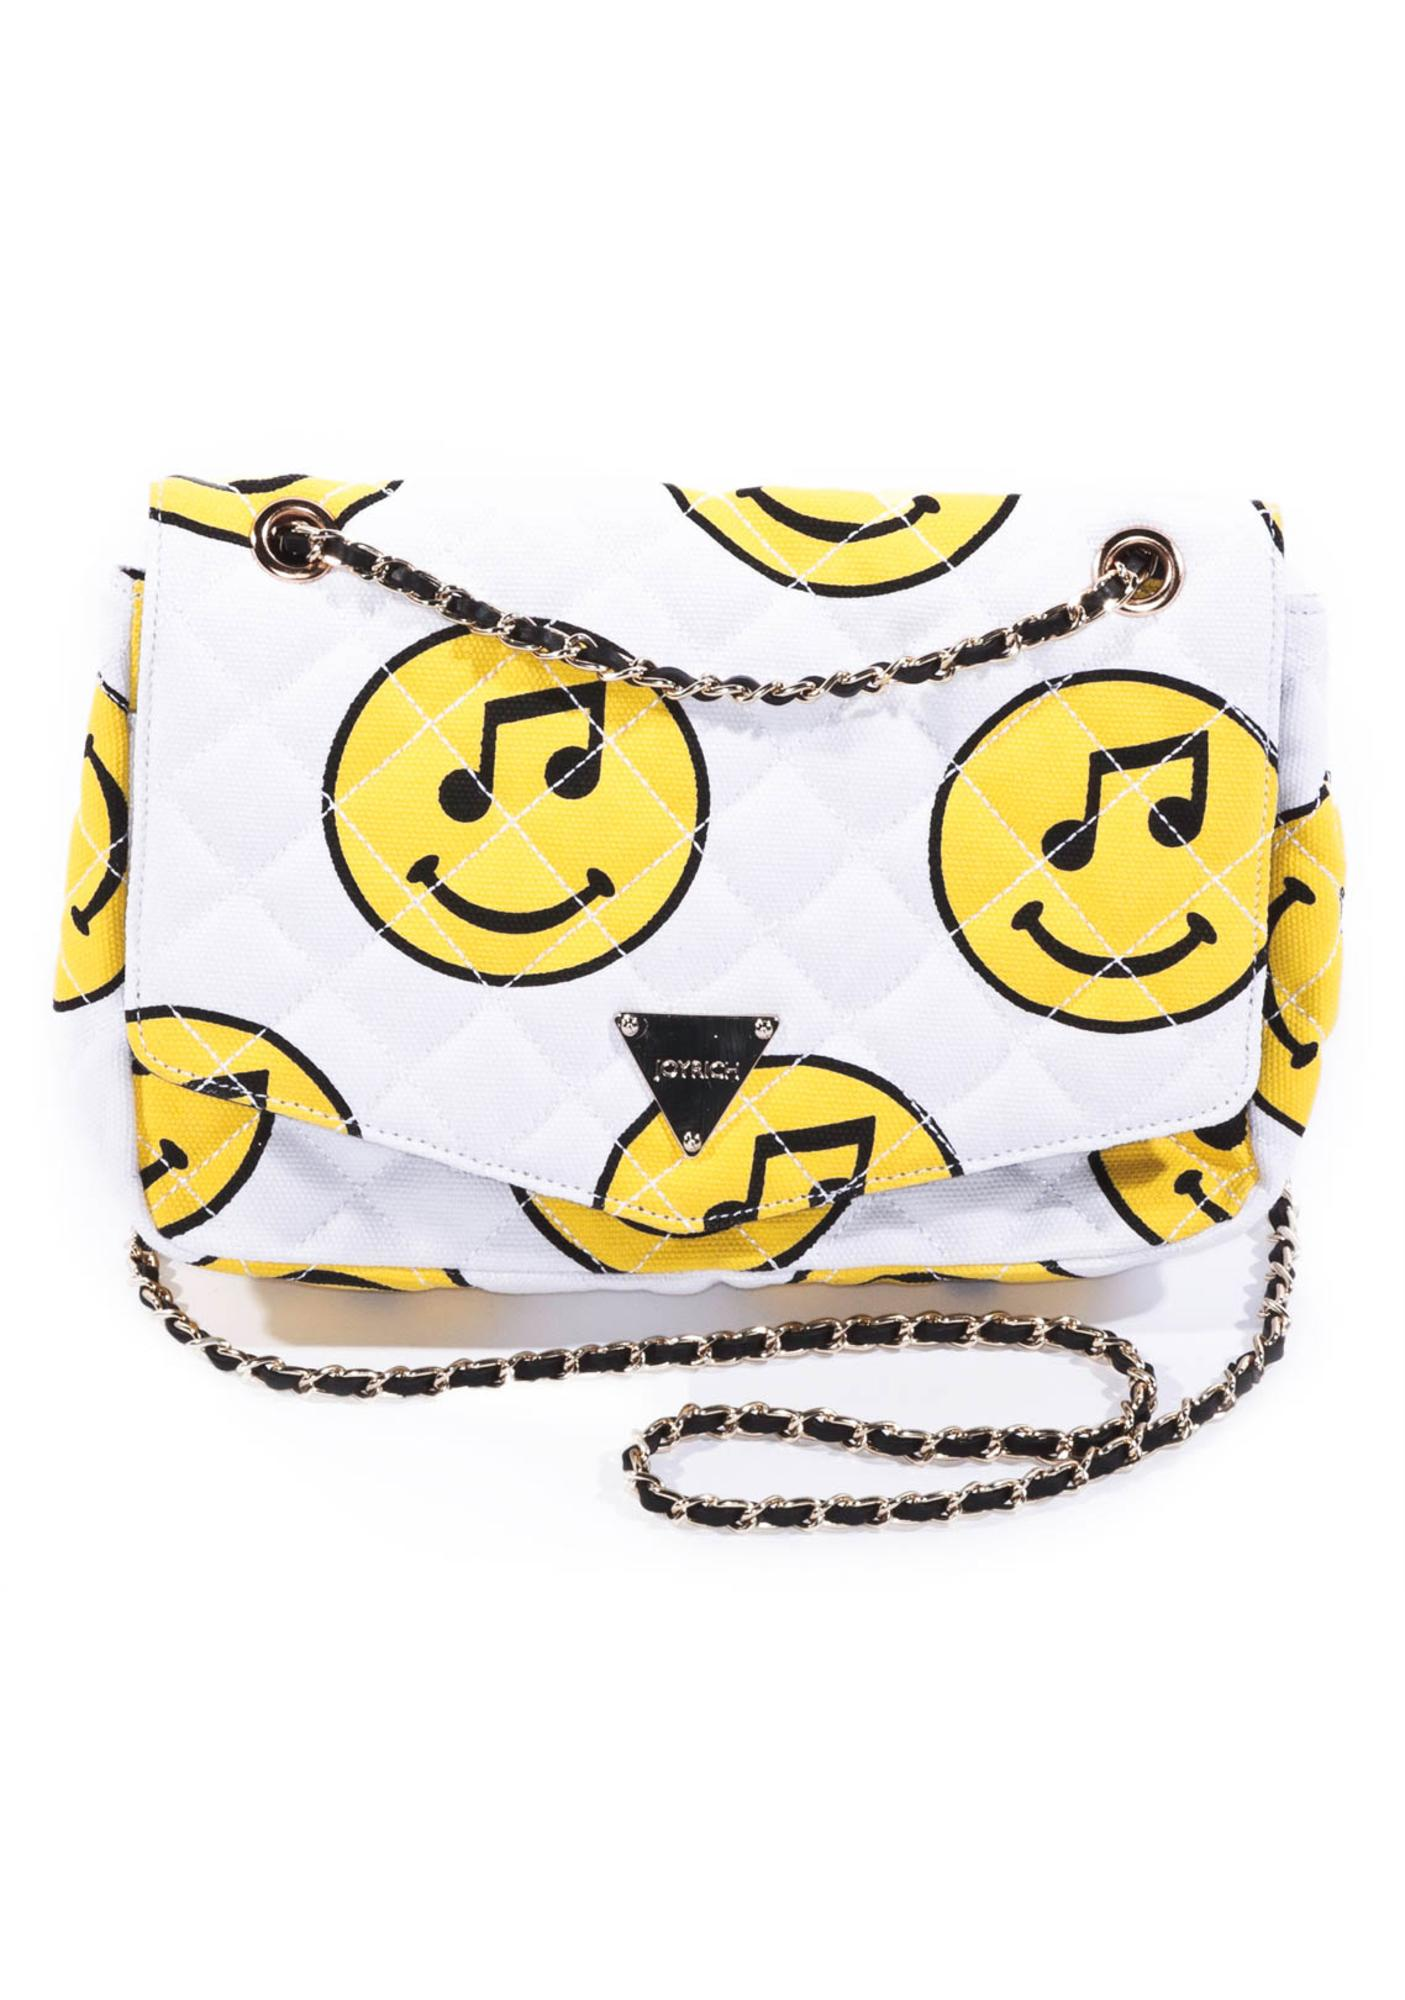 Joyrich Music Face Quilted Chain Purse